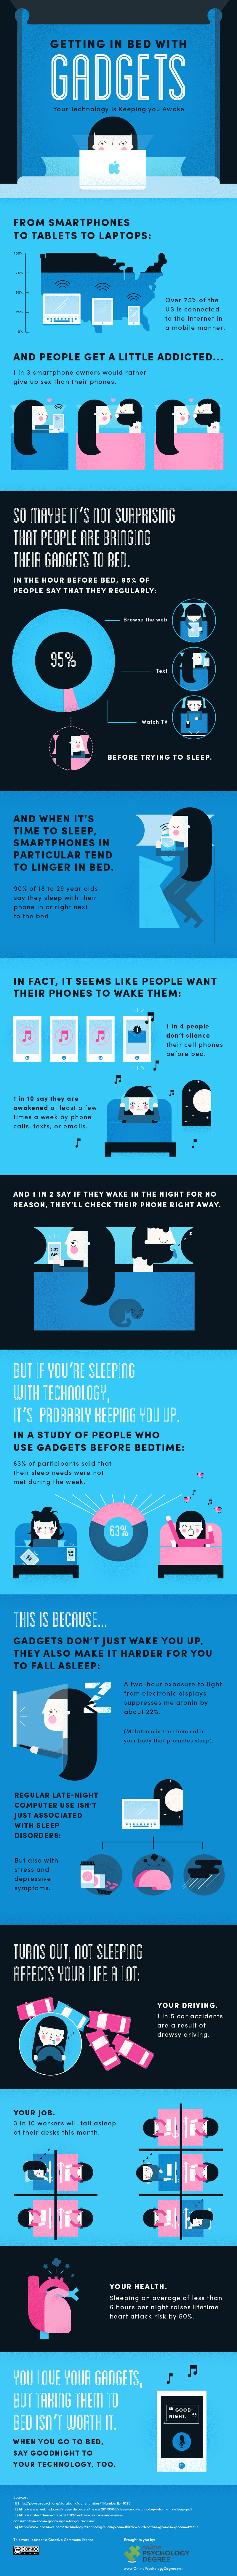 Getting in Bed with Gadgets [Infographic]